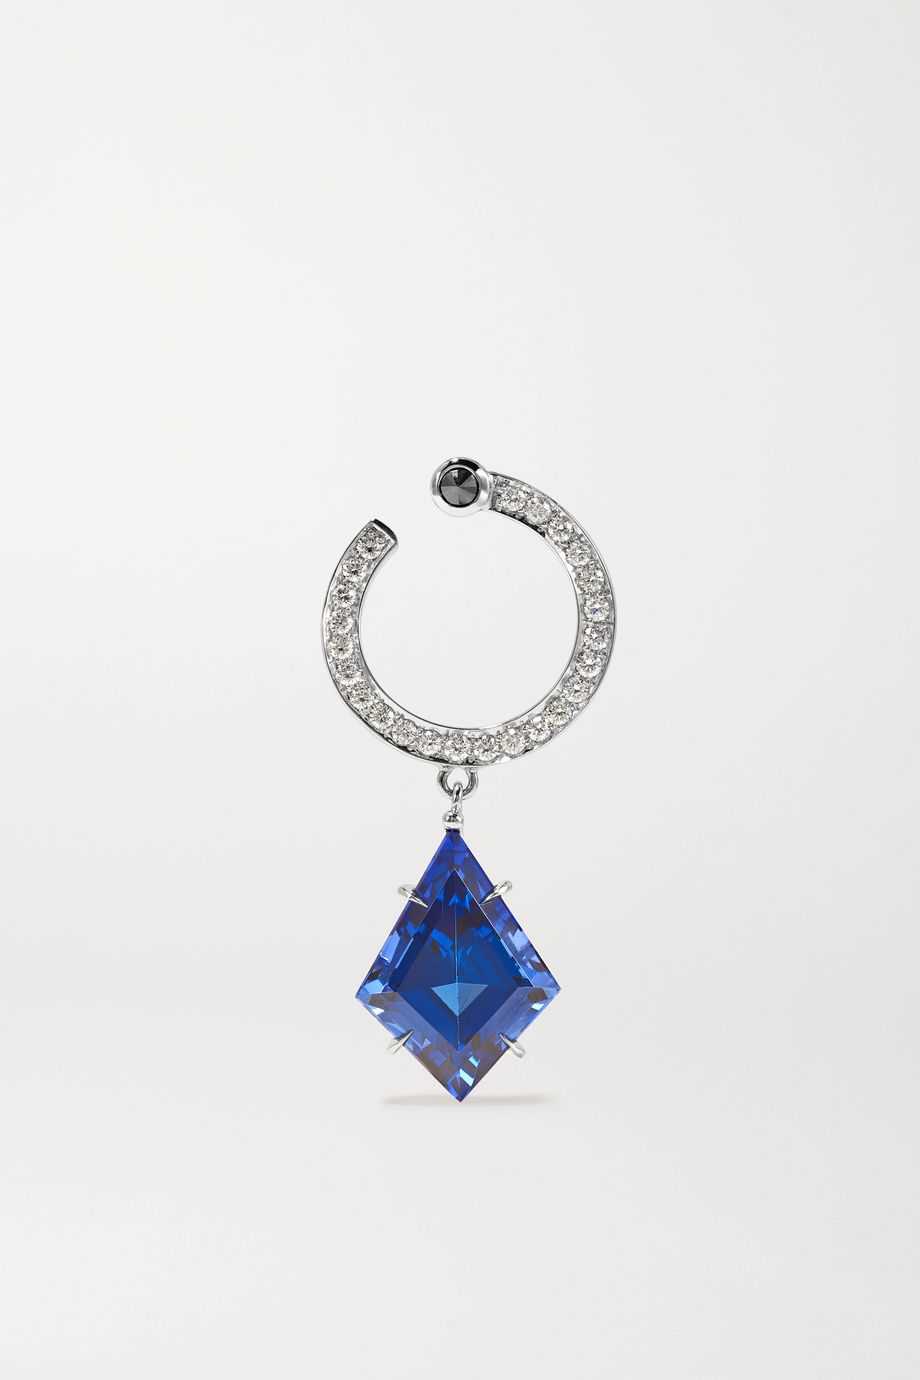 Ara Vartanian 18-karat white gold, tanzanite and diamond earring